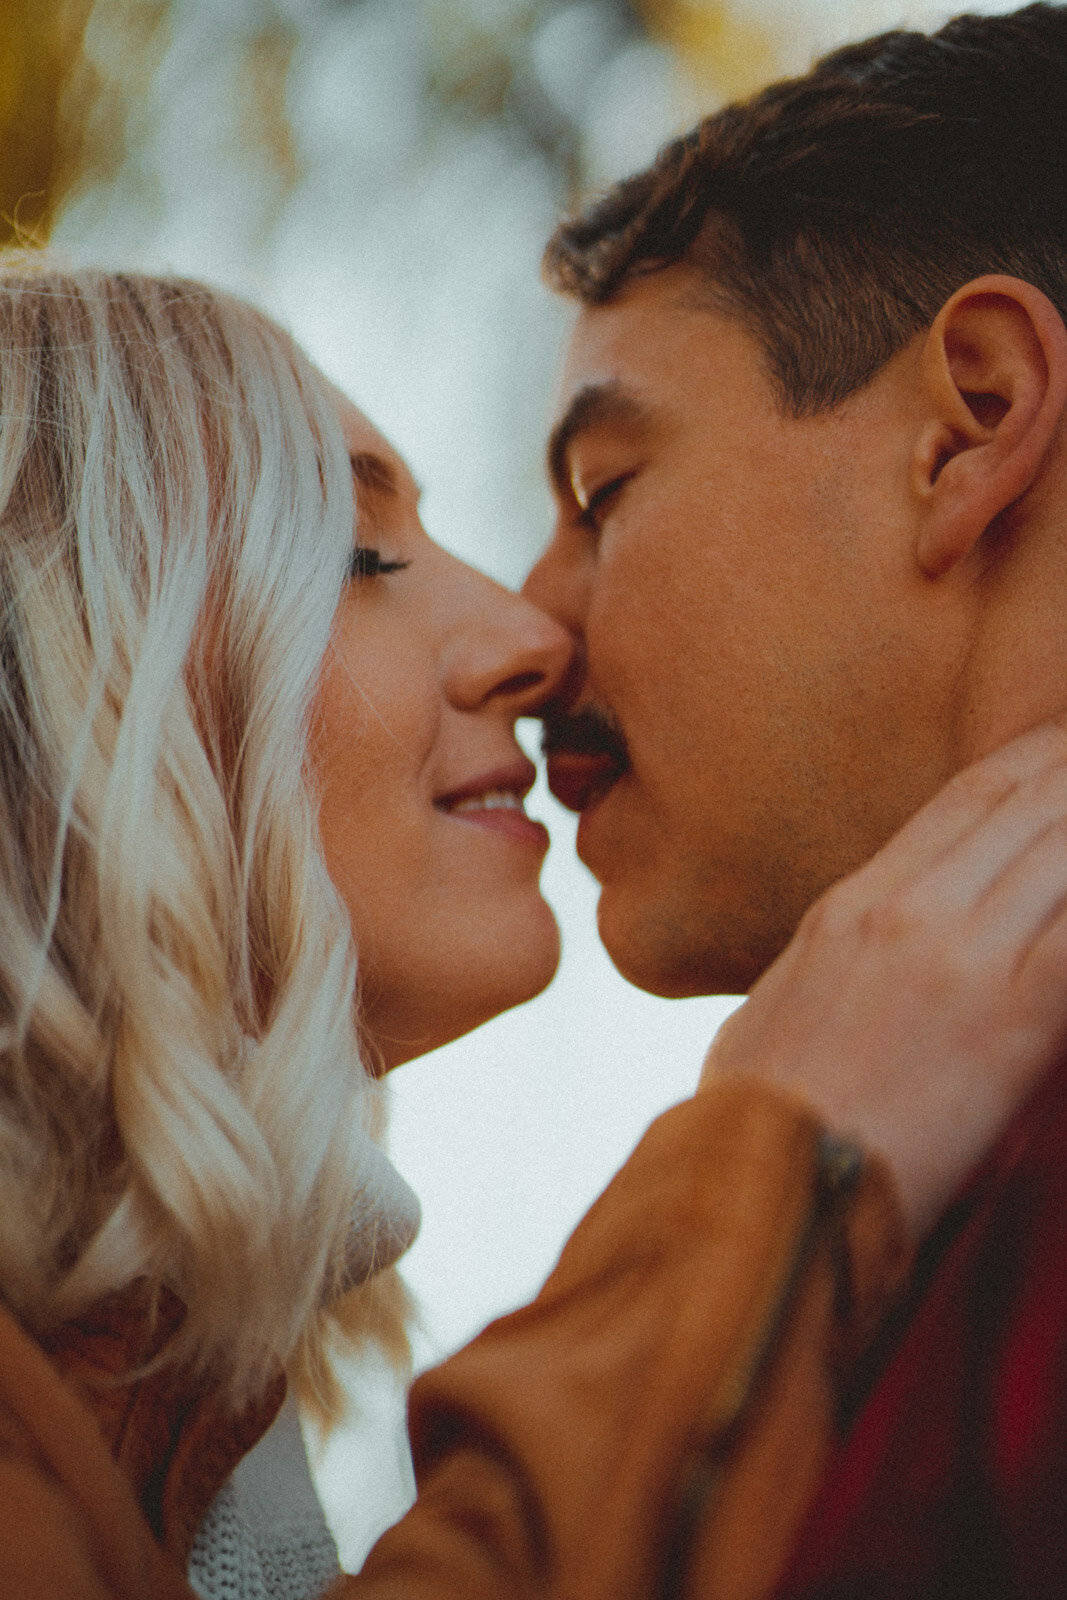 Seth-and-Gail-Engagement-Superia-Weddings-Michael-Inglima-2020-25